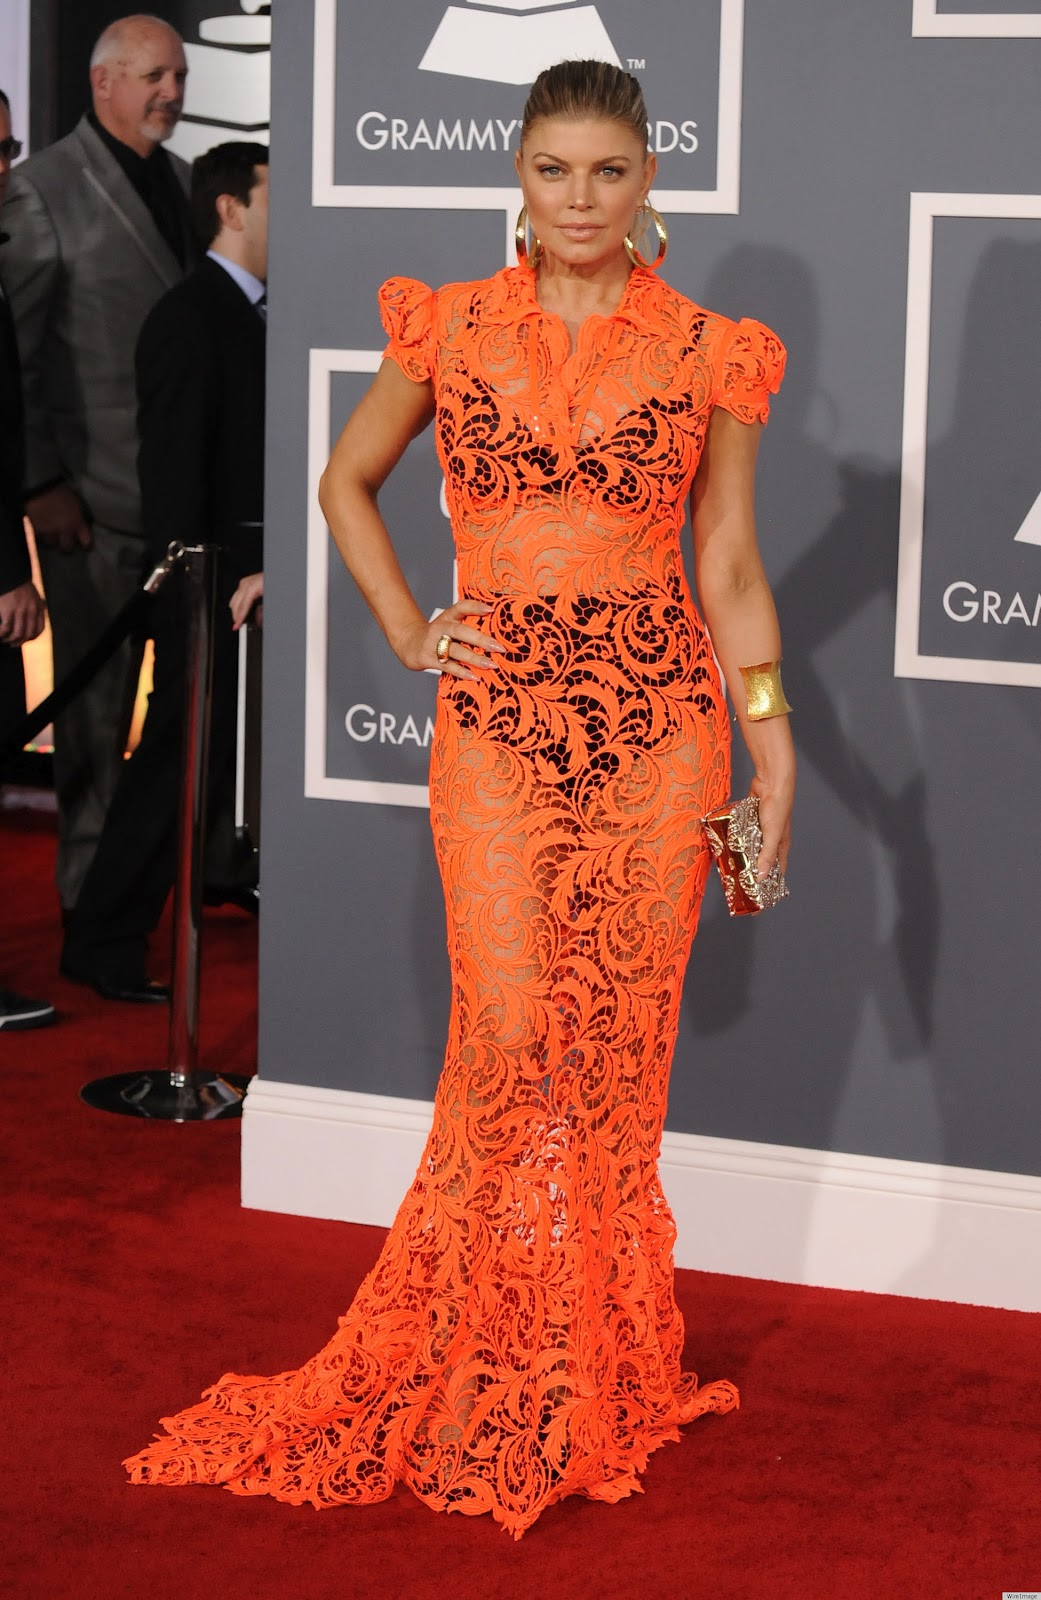 http://2.bp.blogspot.com/-VWAYVXkONac/Tzl0rEXbewI/AAAAAAAADaY/hQikoSqhRNU/s1600/FERGIE-GRAMMYS-2012-RED-CARPET-DRESS.jpg